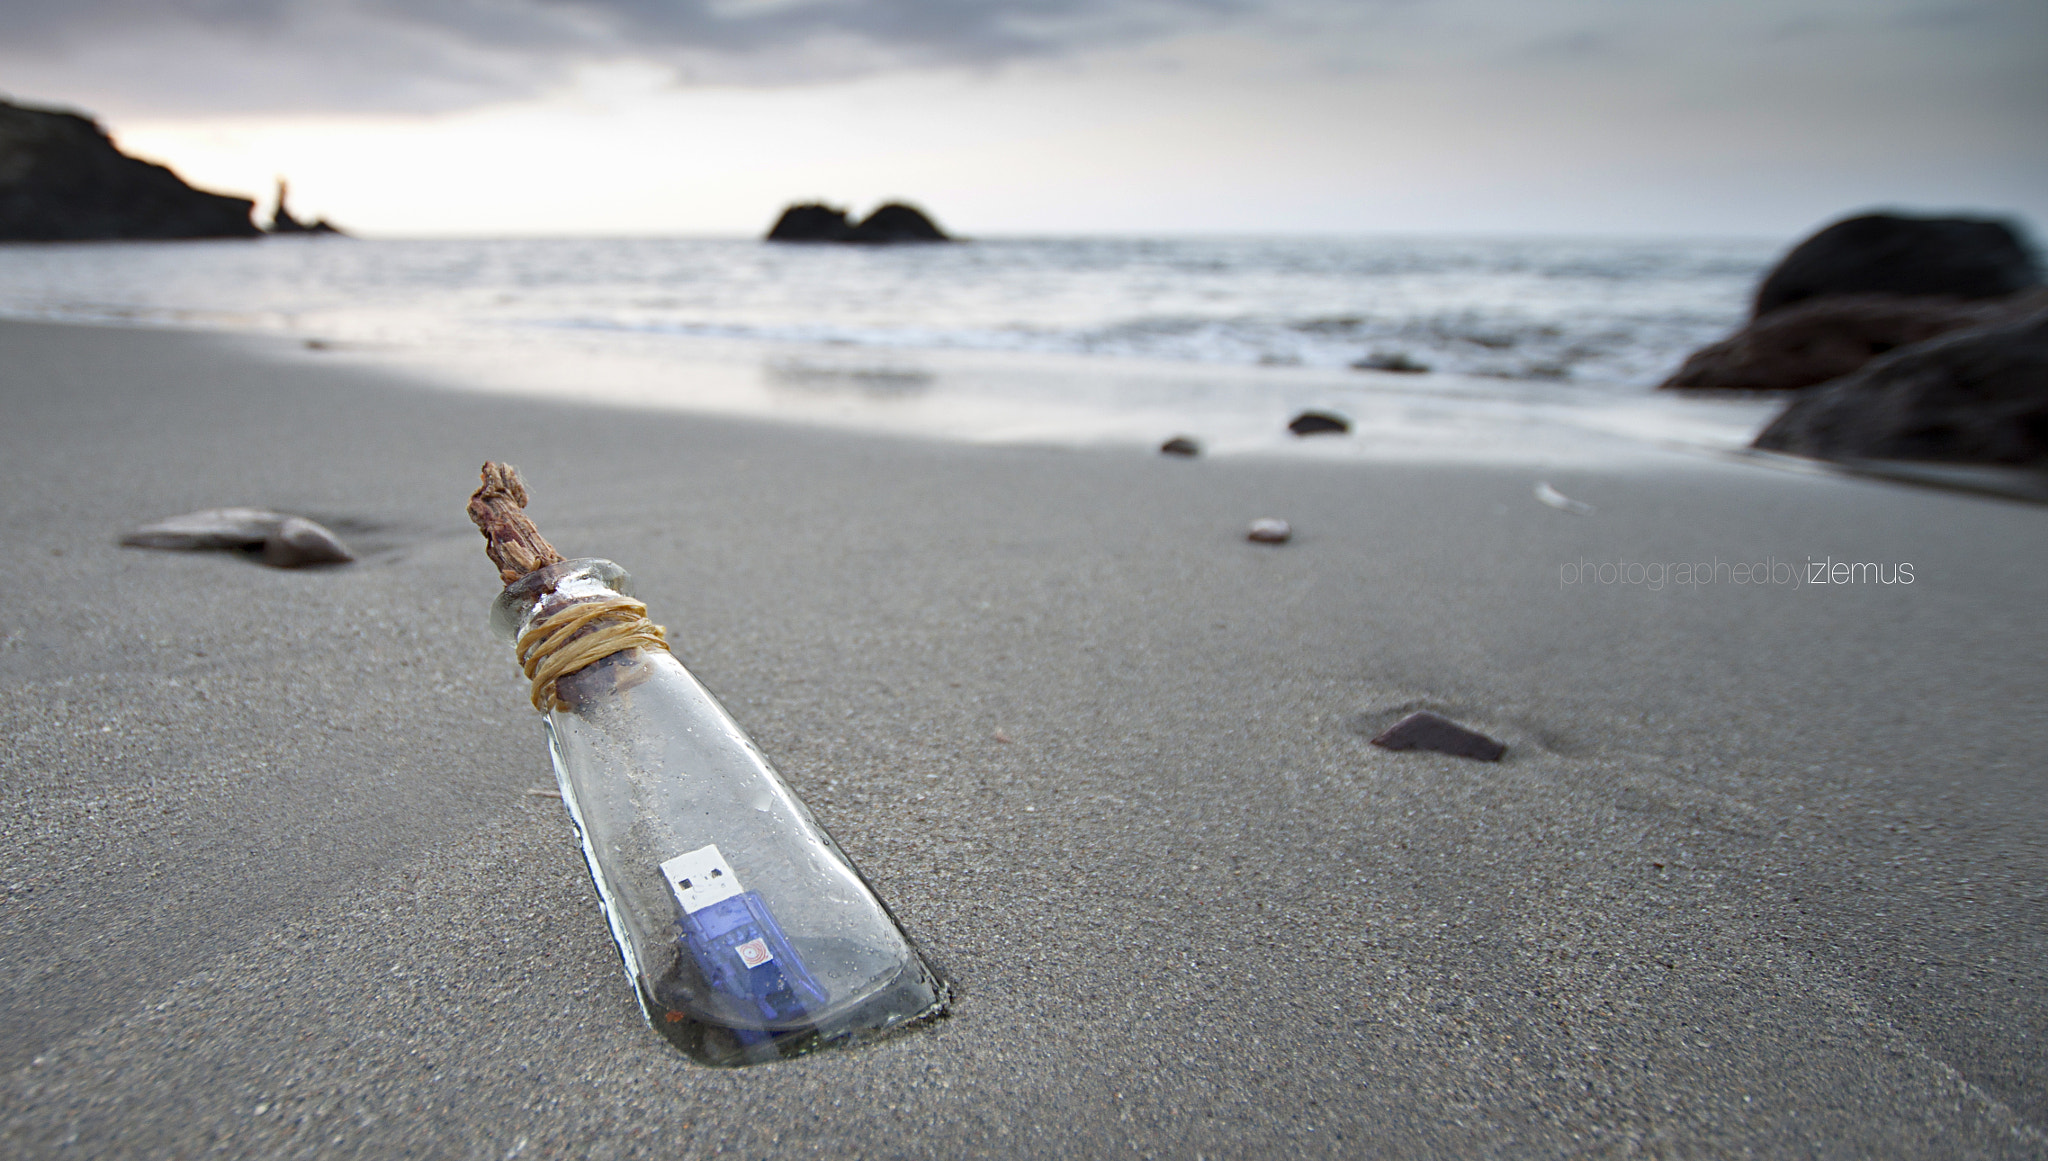 Photograph message in a bottle 3.0 by Diego Izquierdo on 500px